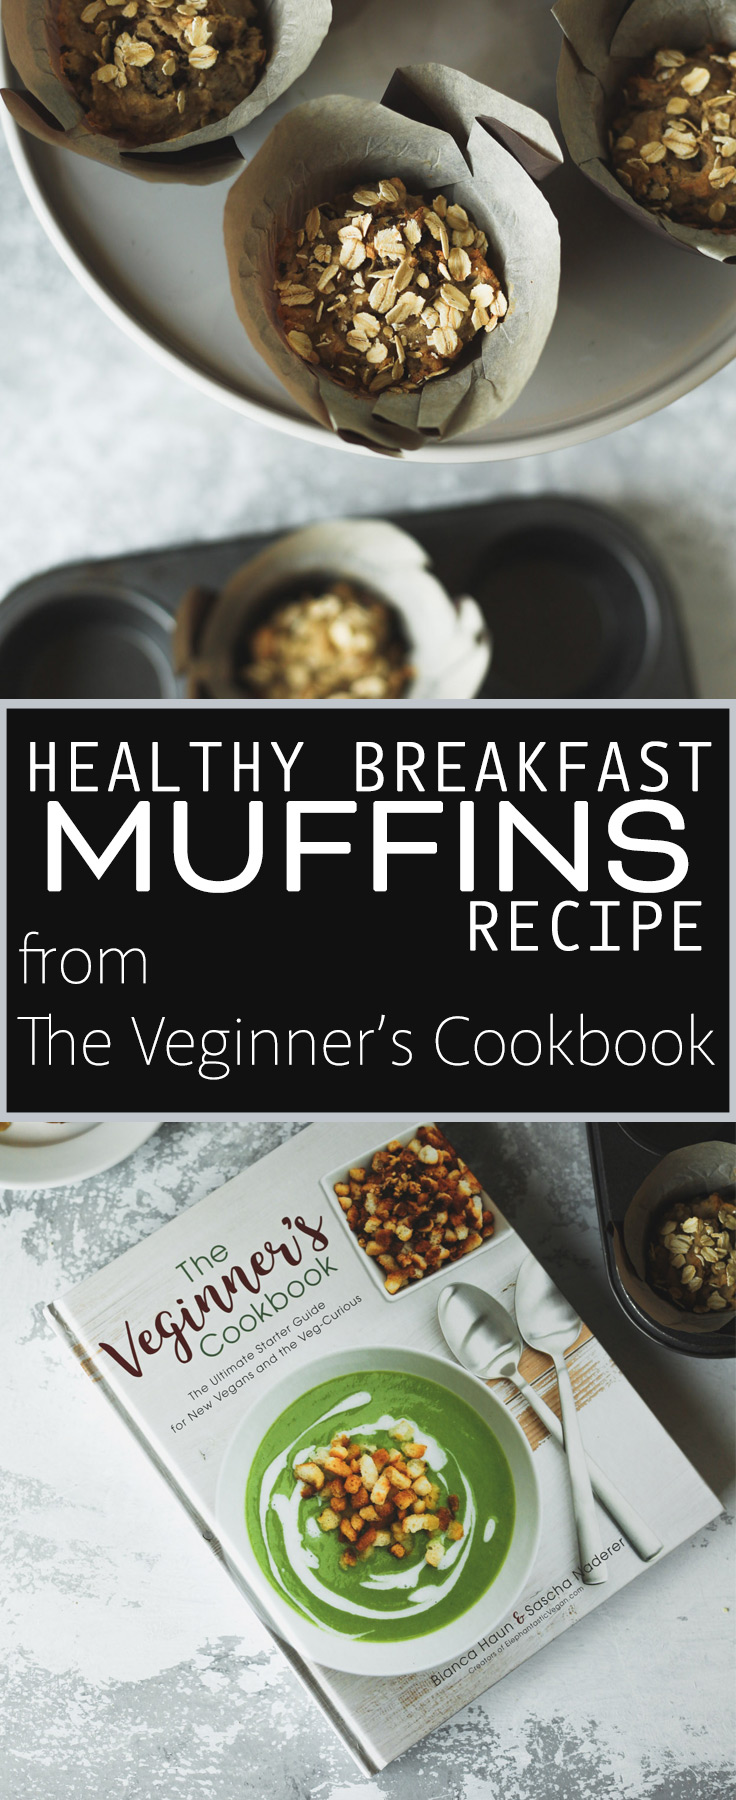 Healthy Breakfast Muffins from The Veginner's Cookbook by Bianca Haun & Sascha Naderer. Photos by Kari of Beautiful Ingredient. Vegan